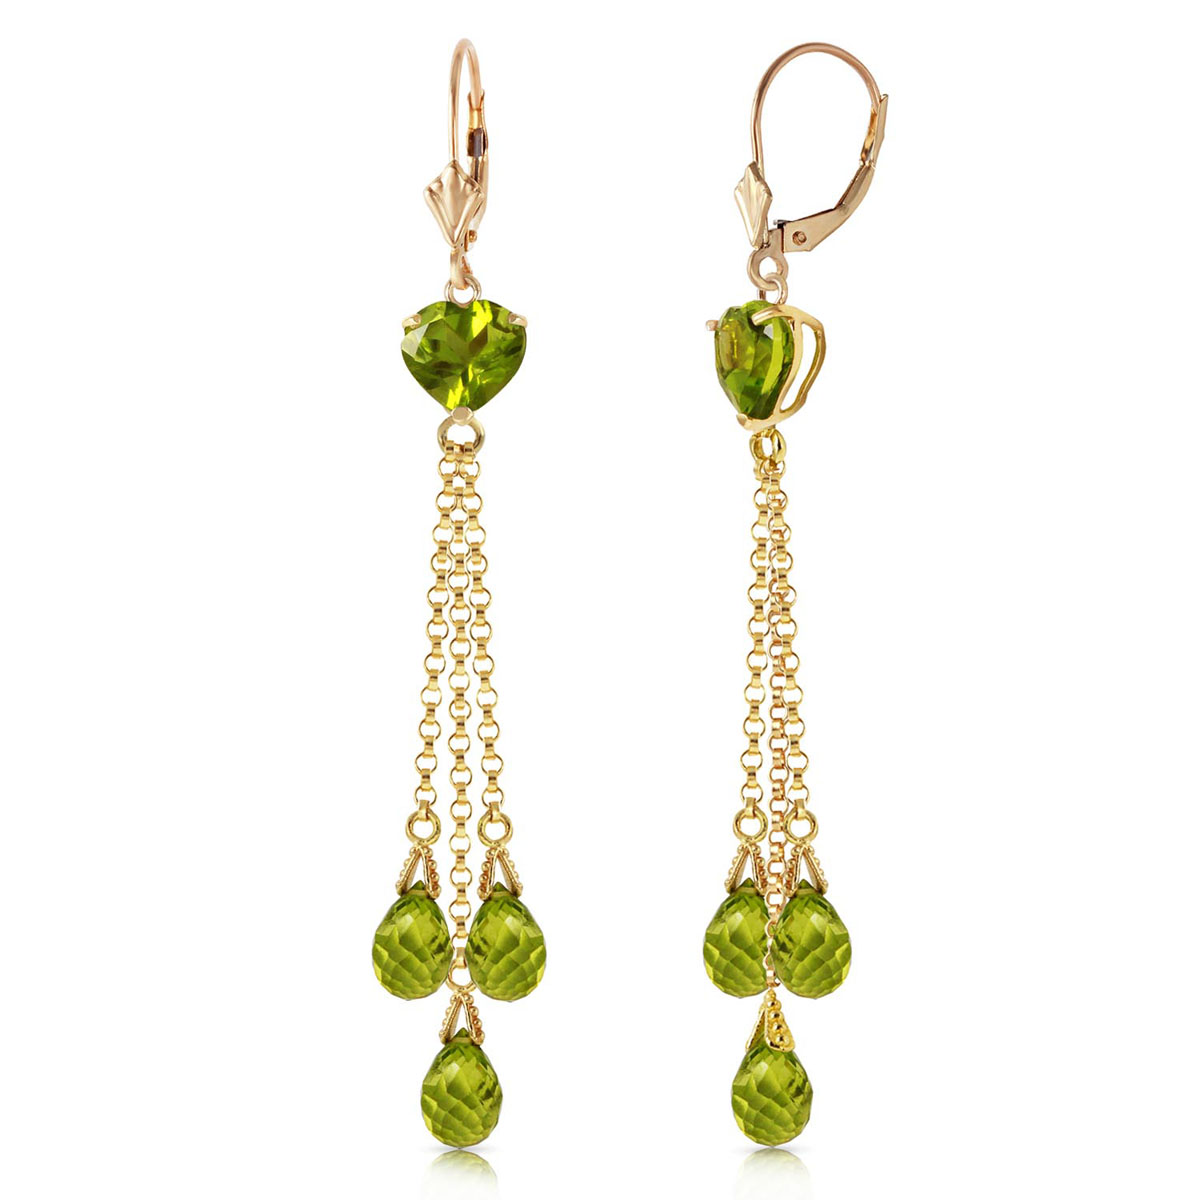 Peridot Vestige Drop Earrings 9.5 ctw in 9ct Gold